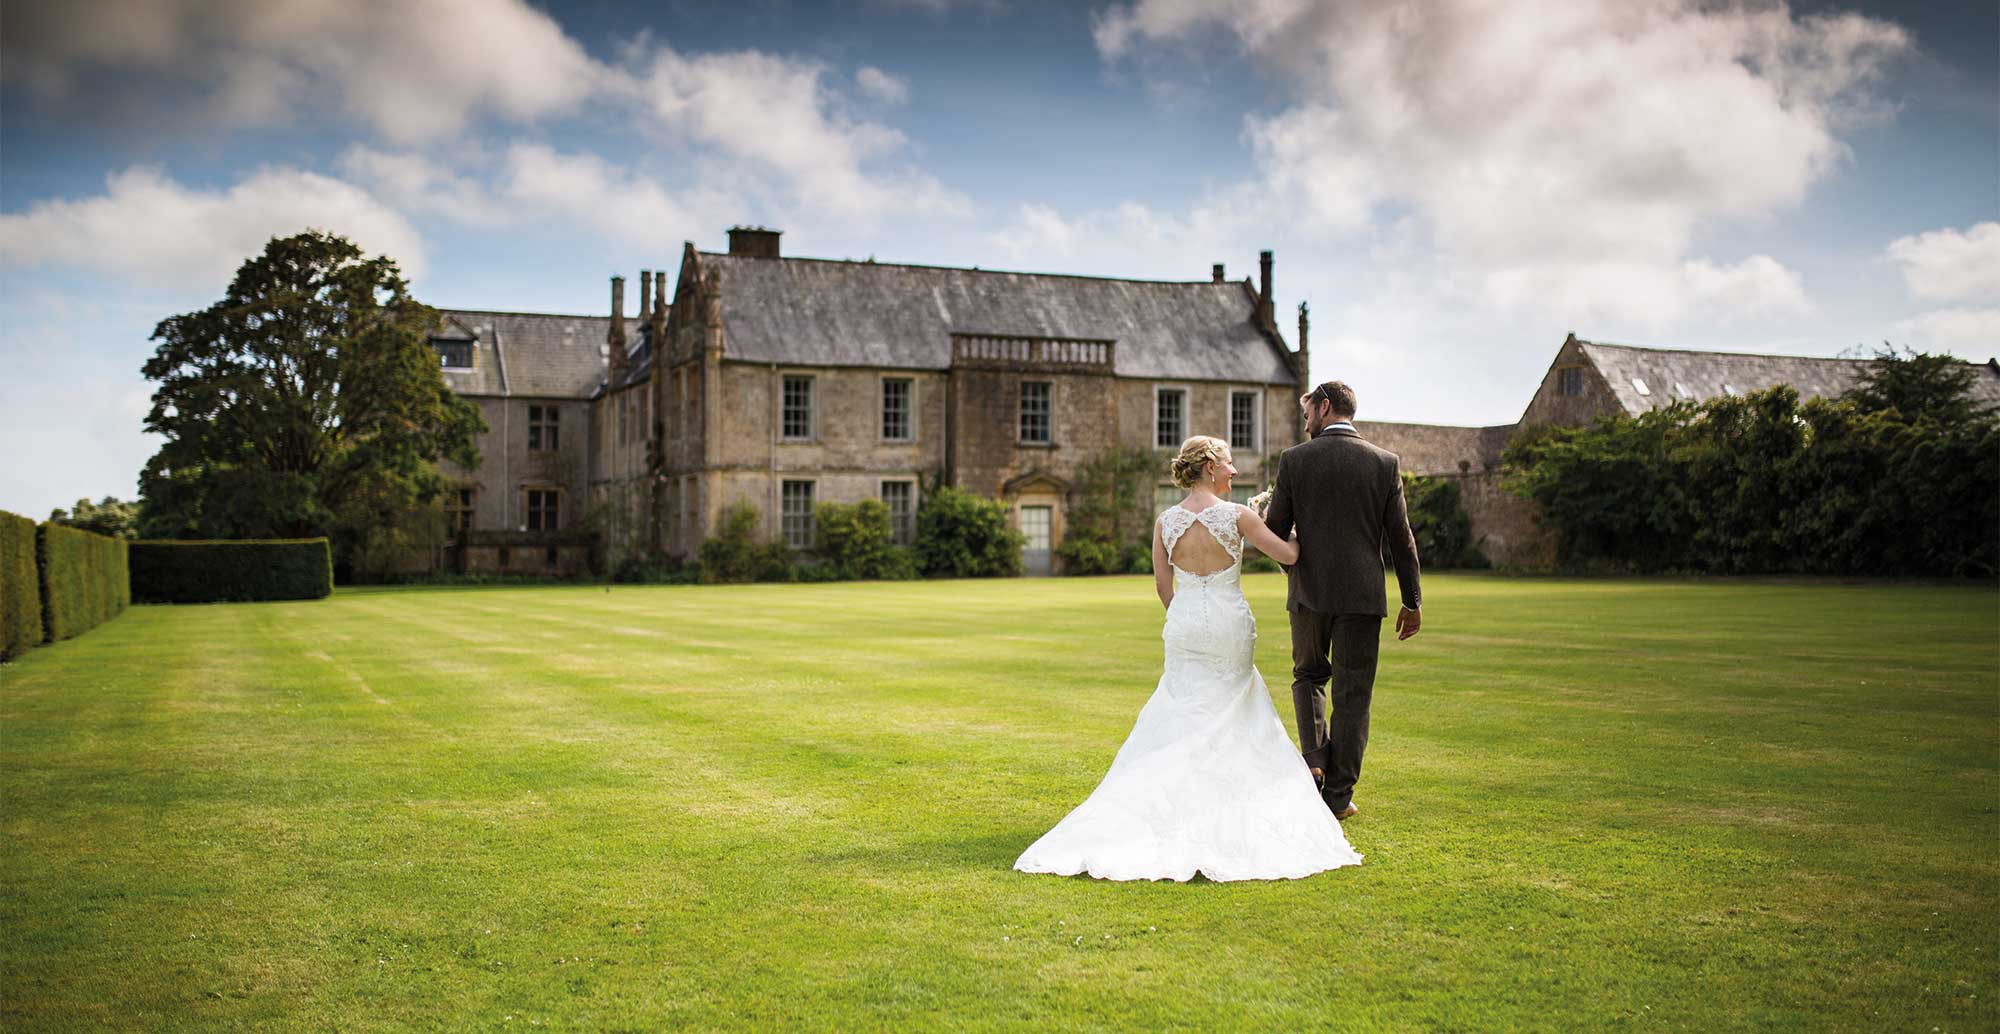 What people say about Mapperton Weddings